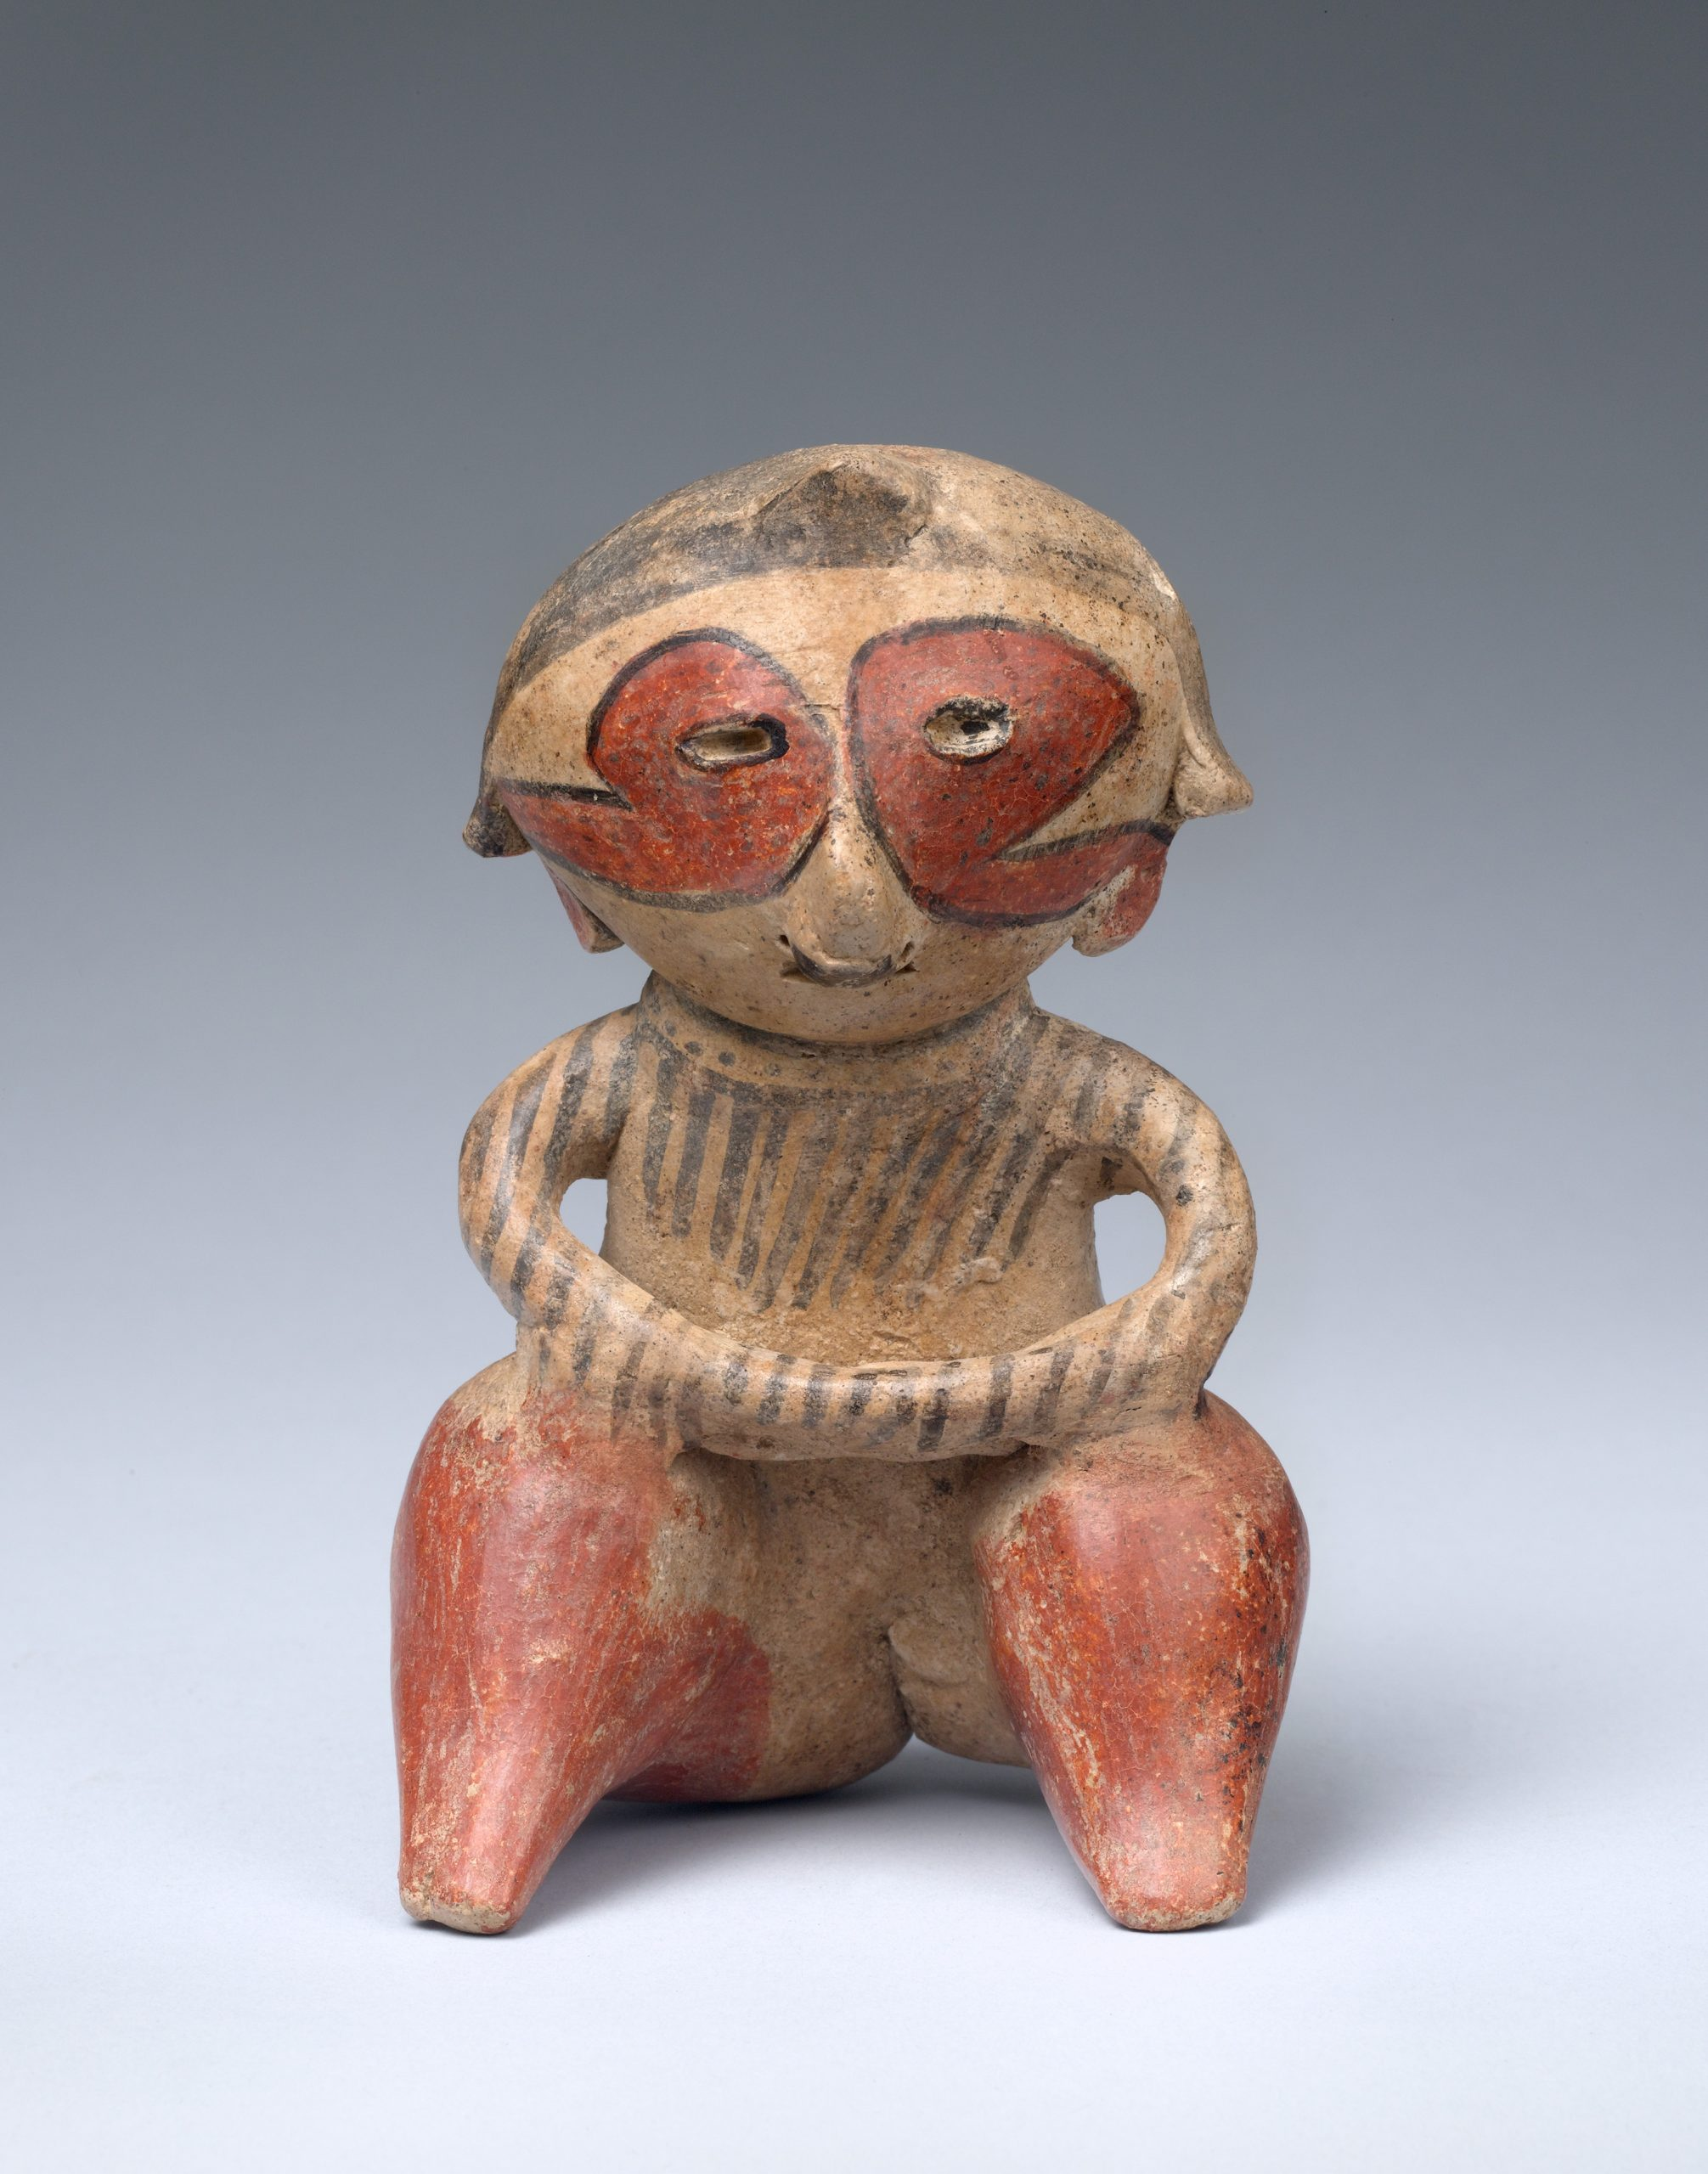 Seated stone figure with an elaborate headdress, garment, and ear spools.